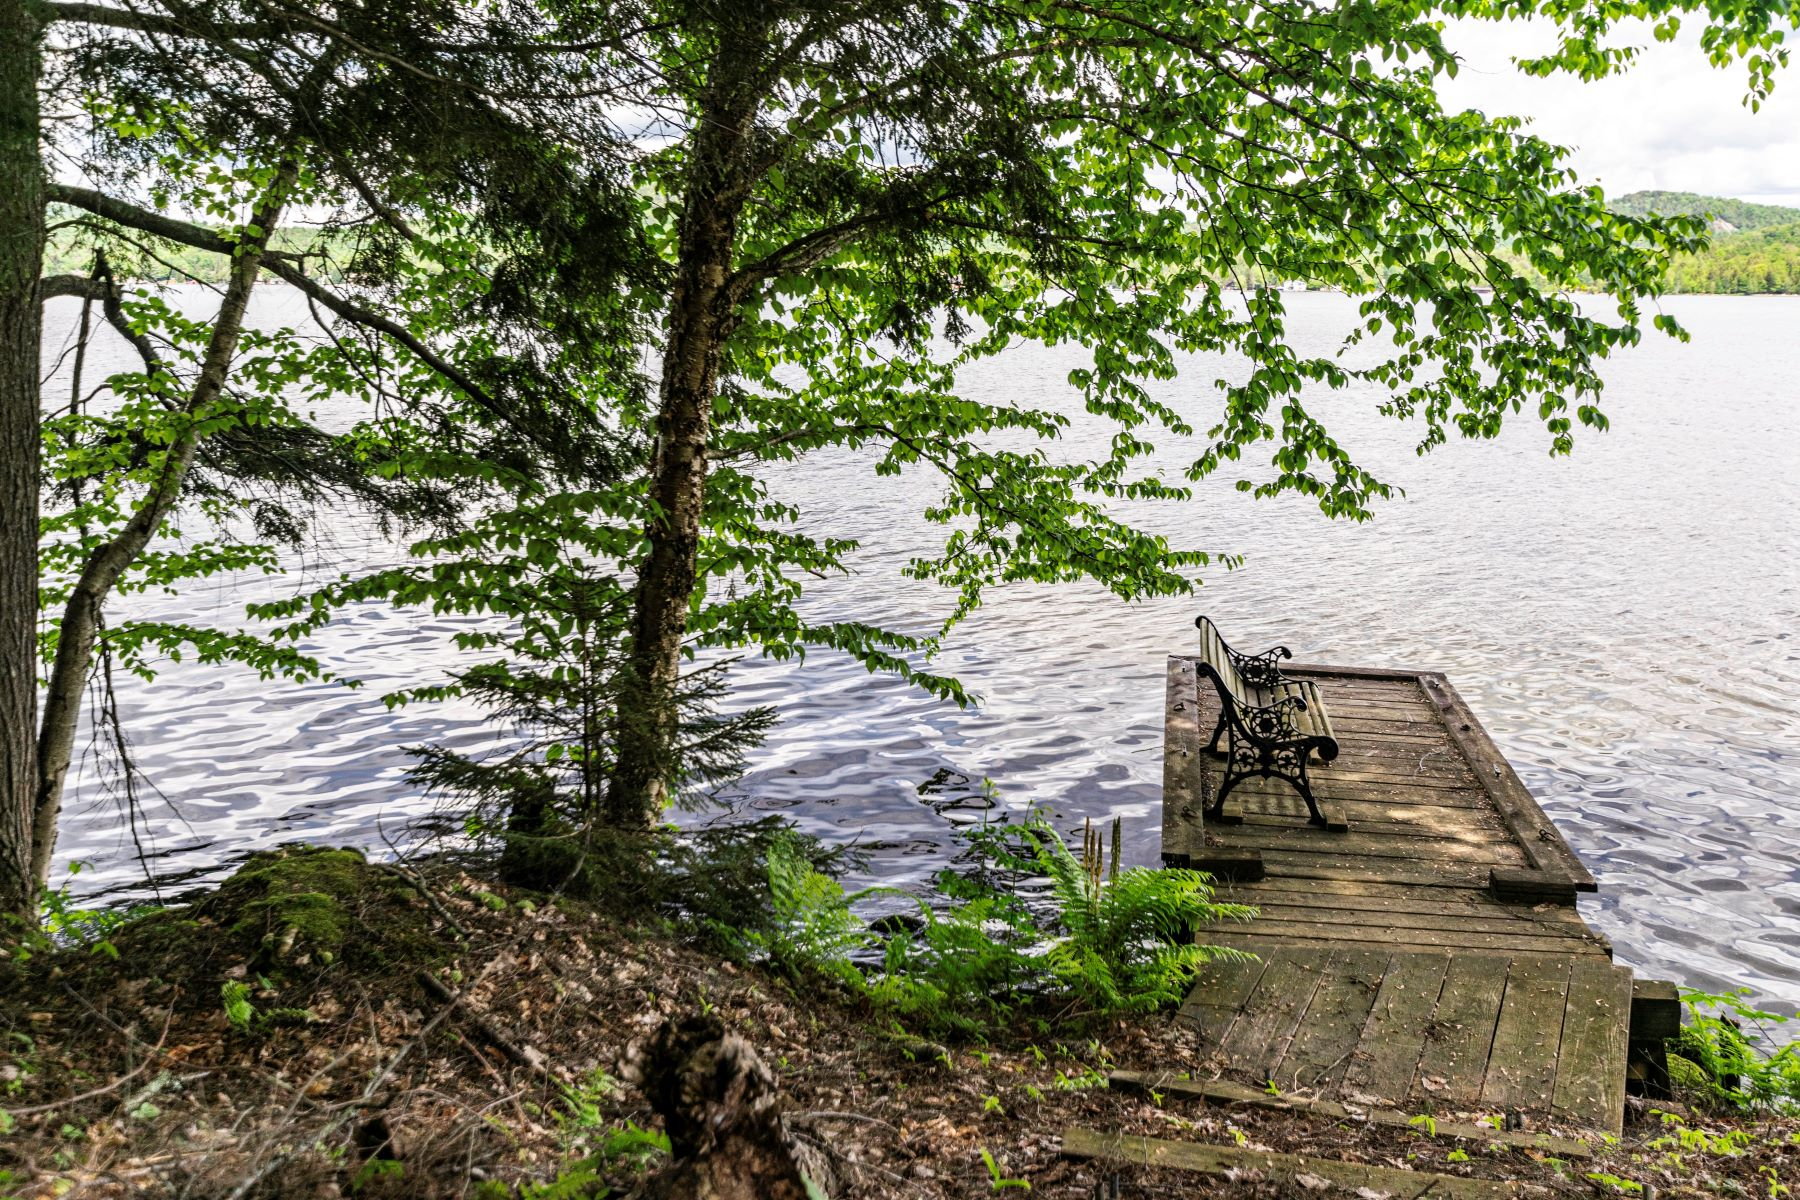 Property for Sale at Fourth Lake Waterfront Cabin 129 Ramblers Lodge Road Old Forge, New York 13420 United States